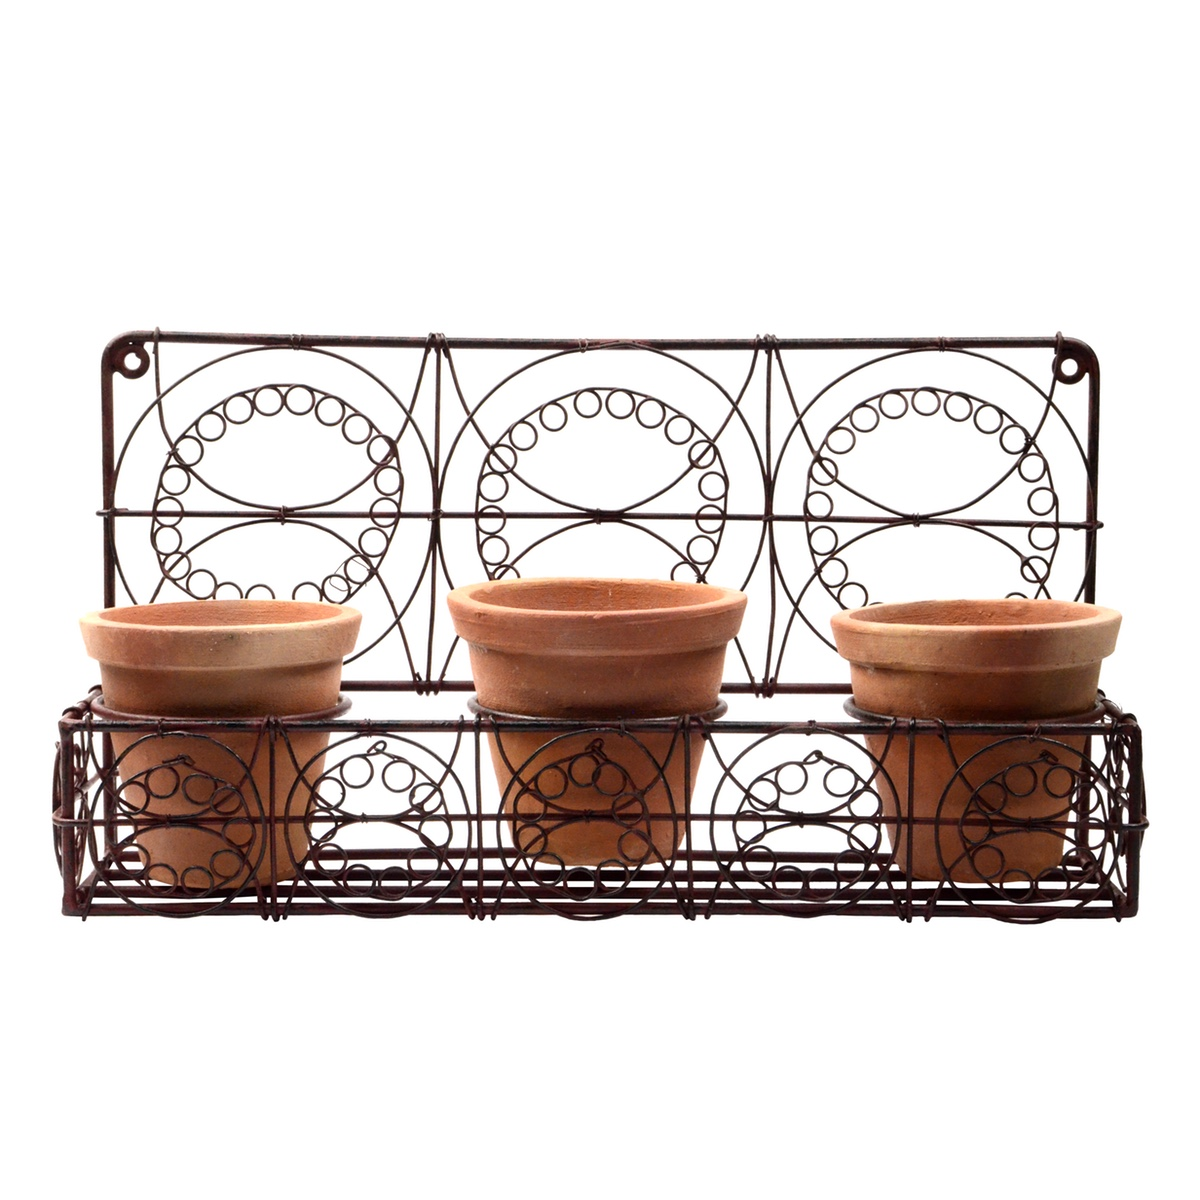 Metal 3 Terra Cotta Pots Wall Planter Rustic Farmhouse Garden/Patio/Yard Decor